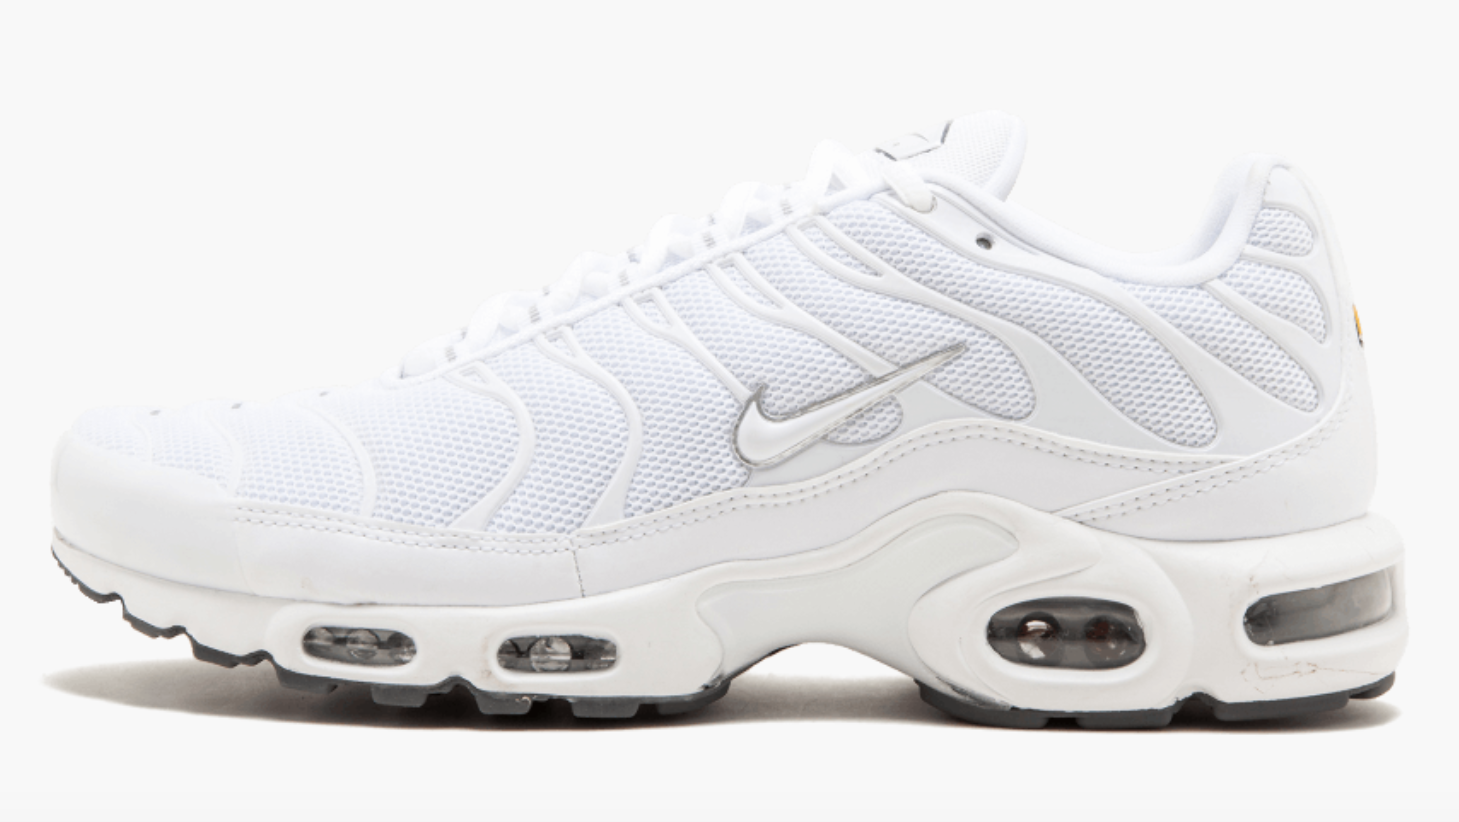 buy online d3f79 8e244 Best Nike Air Max Shoes 2019 | Air Max Releases and Deals